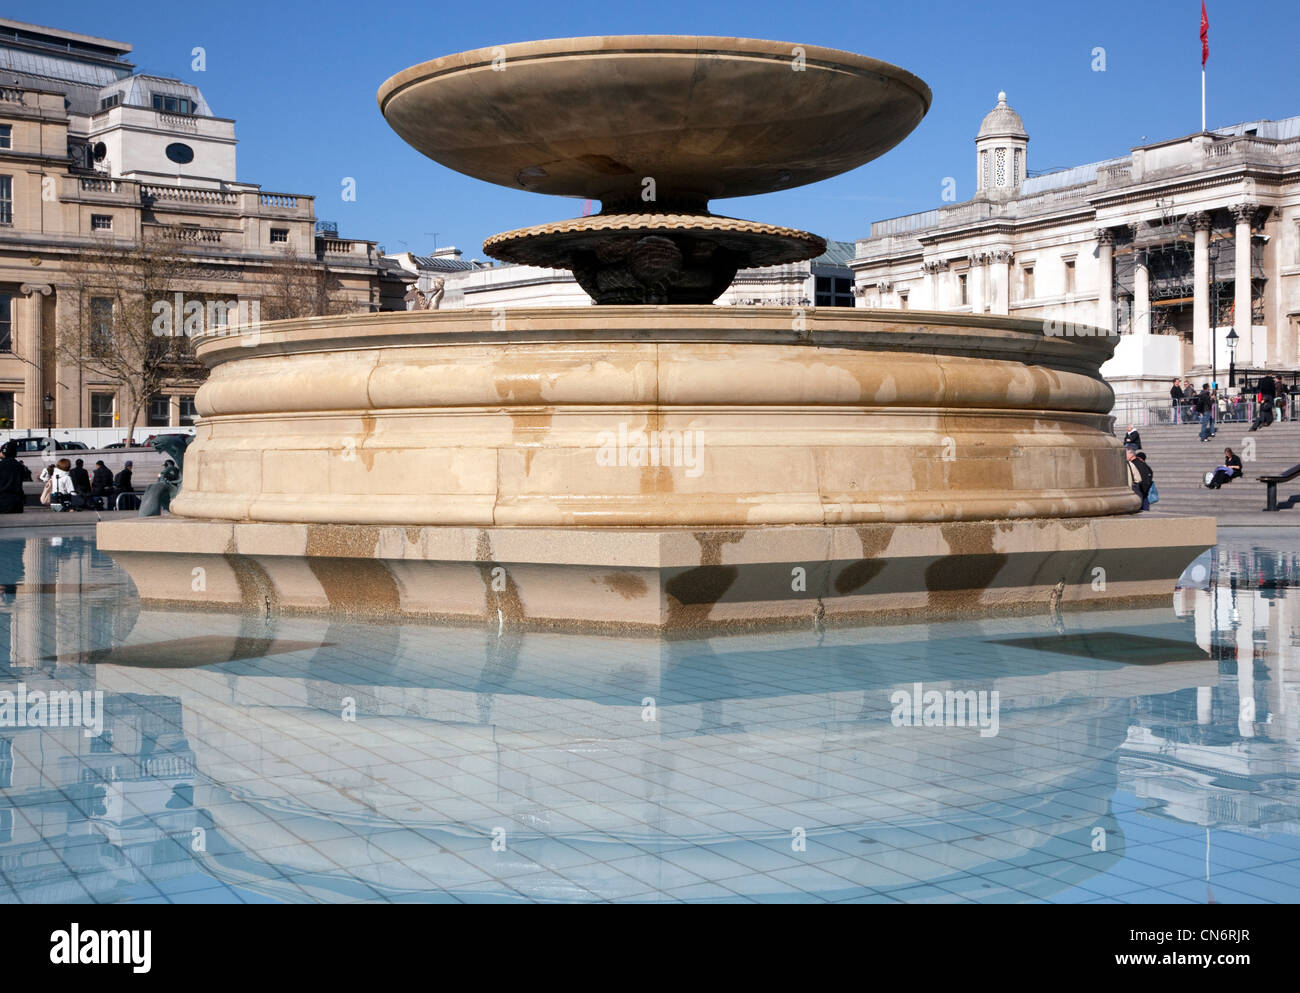 Fountains in Trafalgar Square, London, switched off because of drought - Stock Image